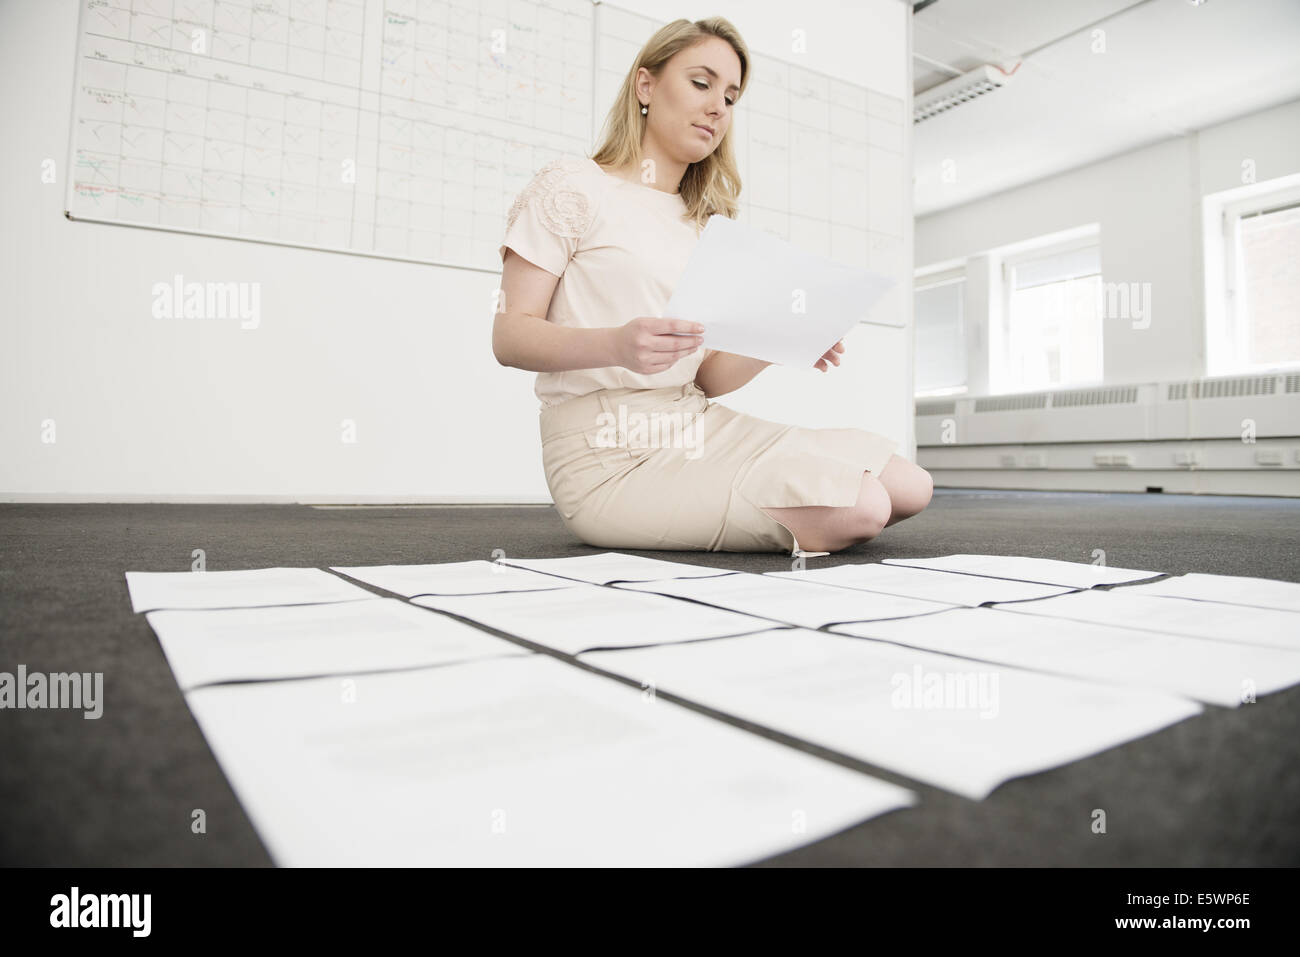 Young businesswoman organizing paperwork on office floor - Stock Image